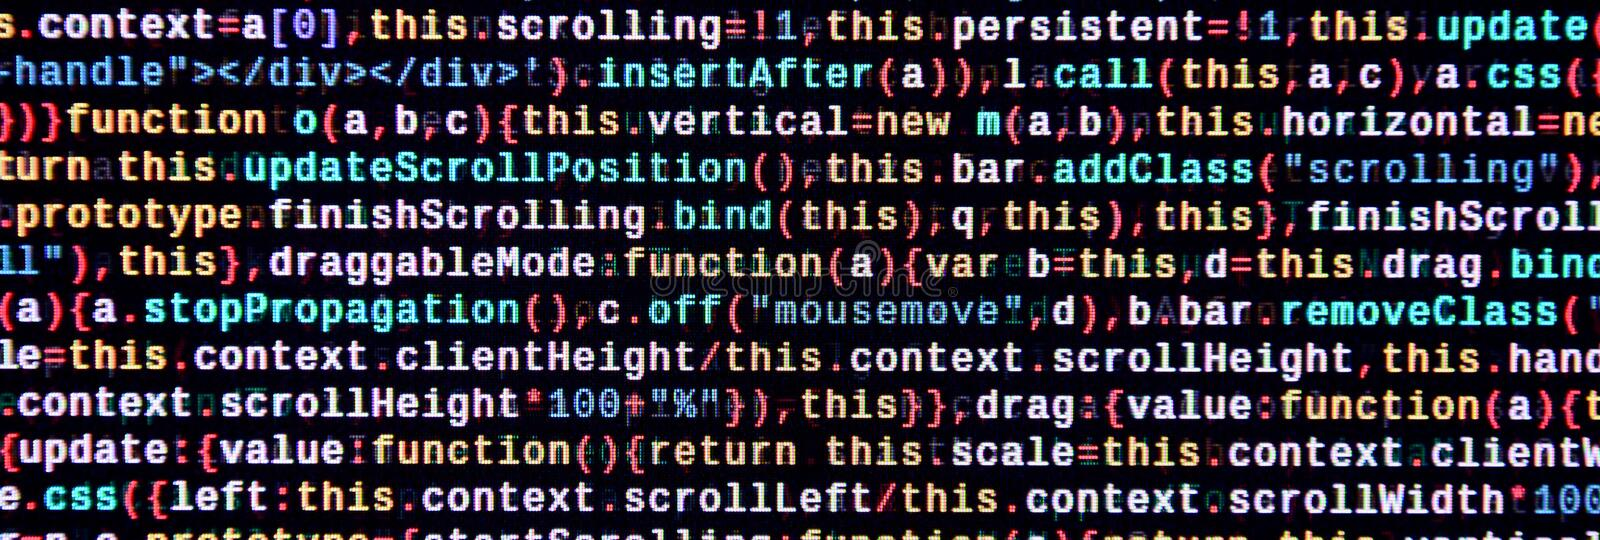 Javascript functions, variables, objects. Monitor closeup of function source code. IT specialist workplace stock image